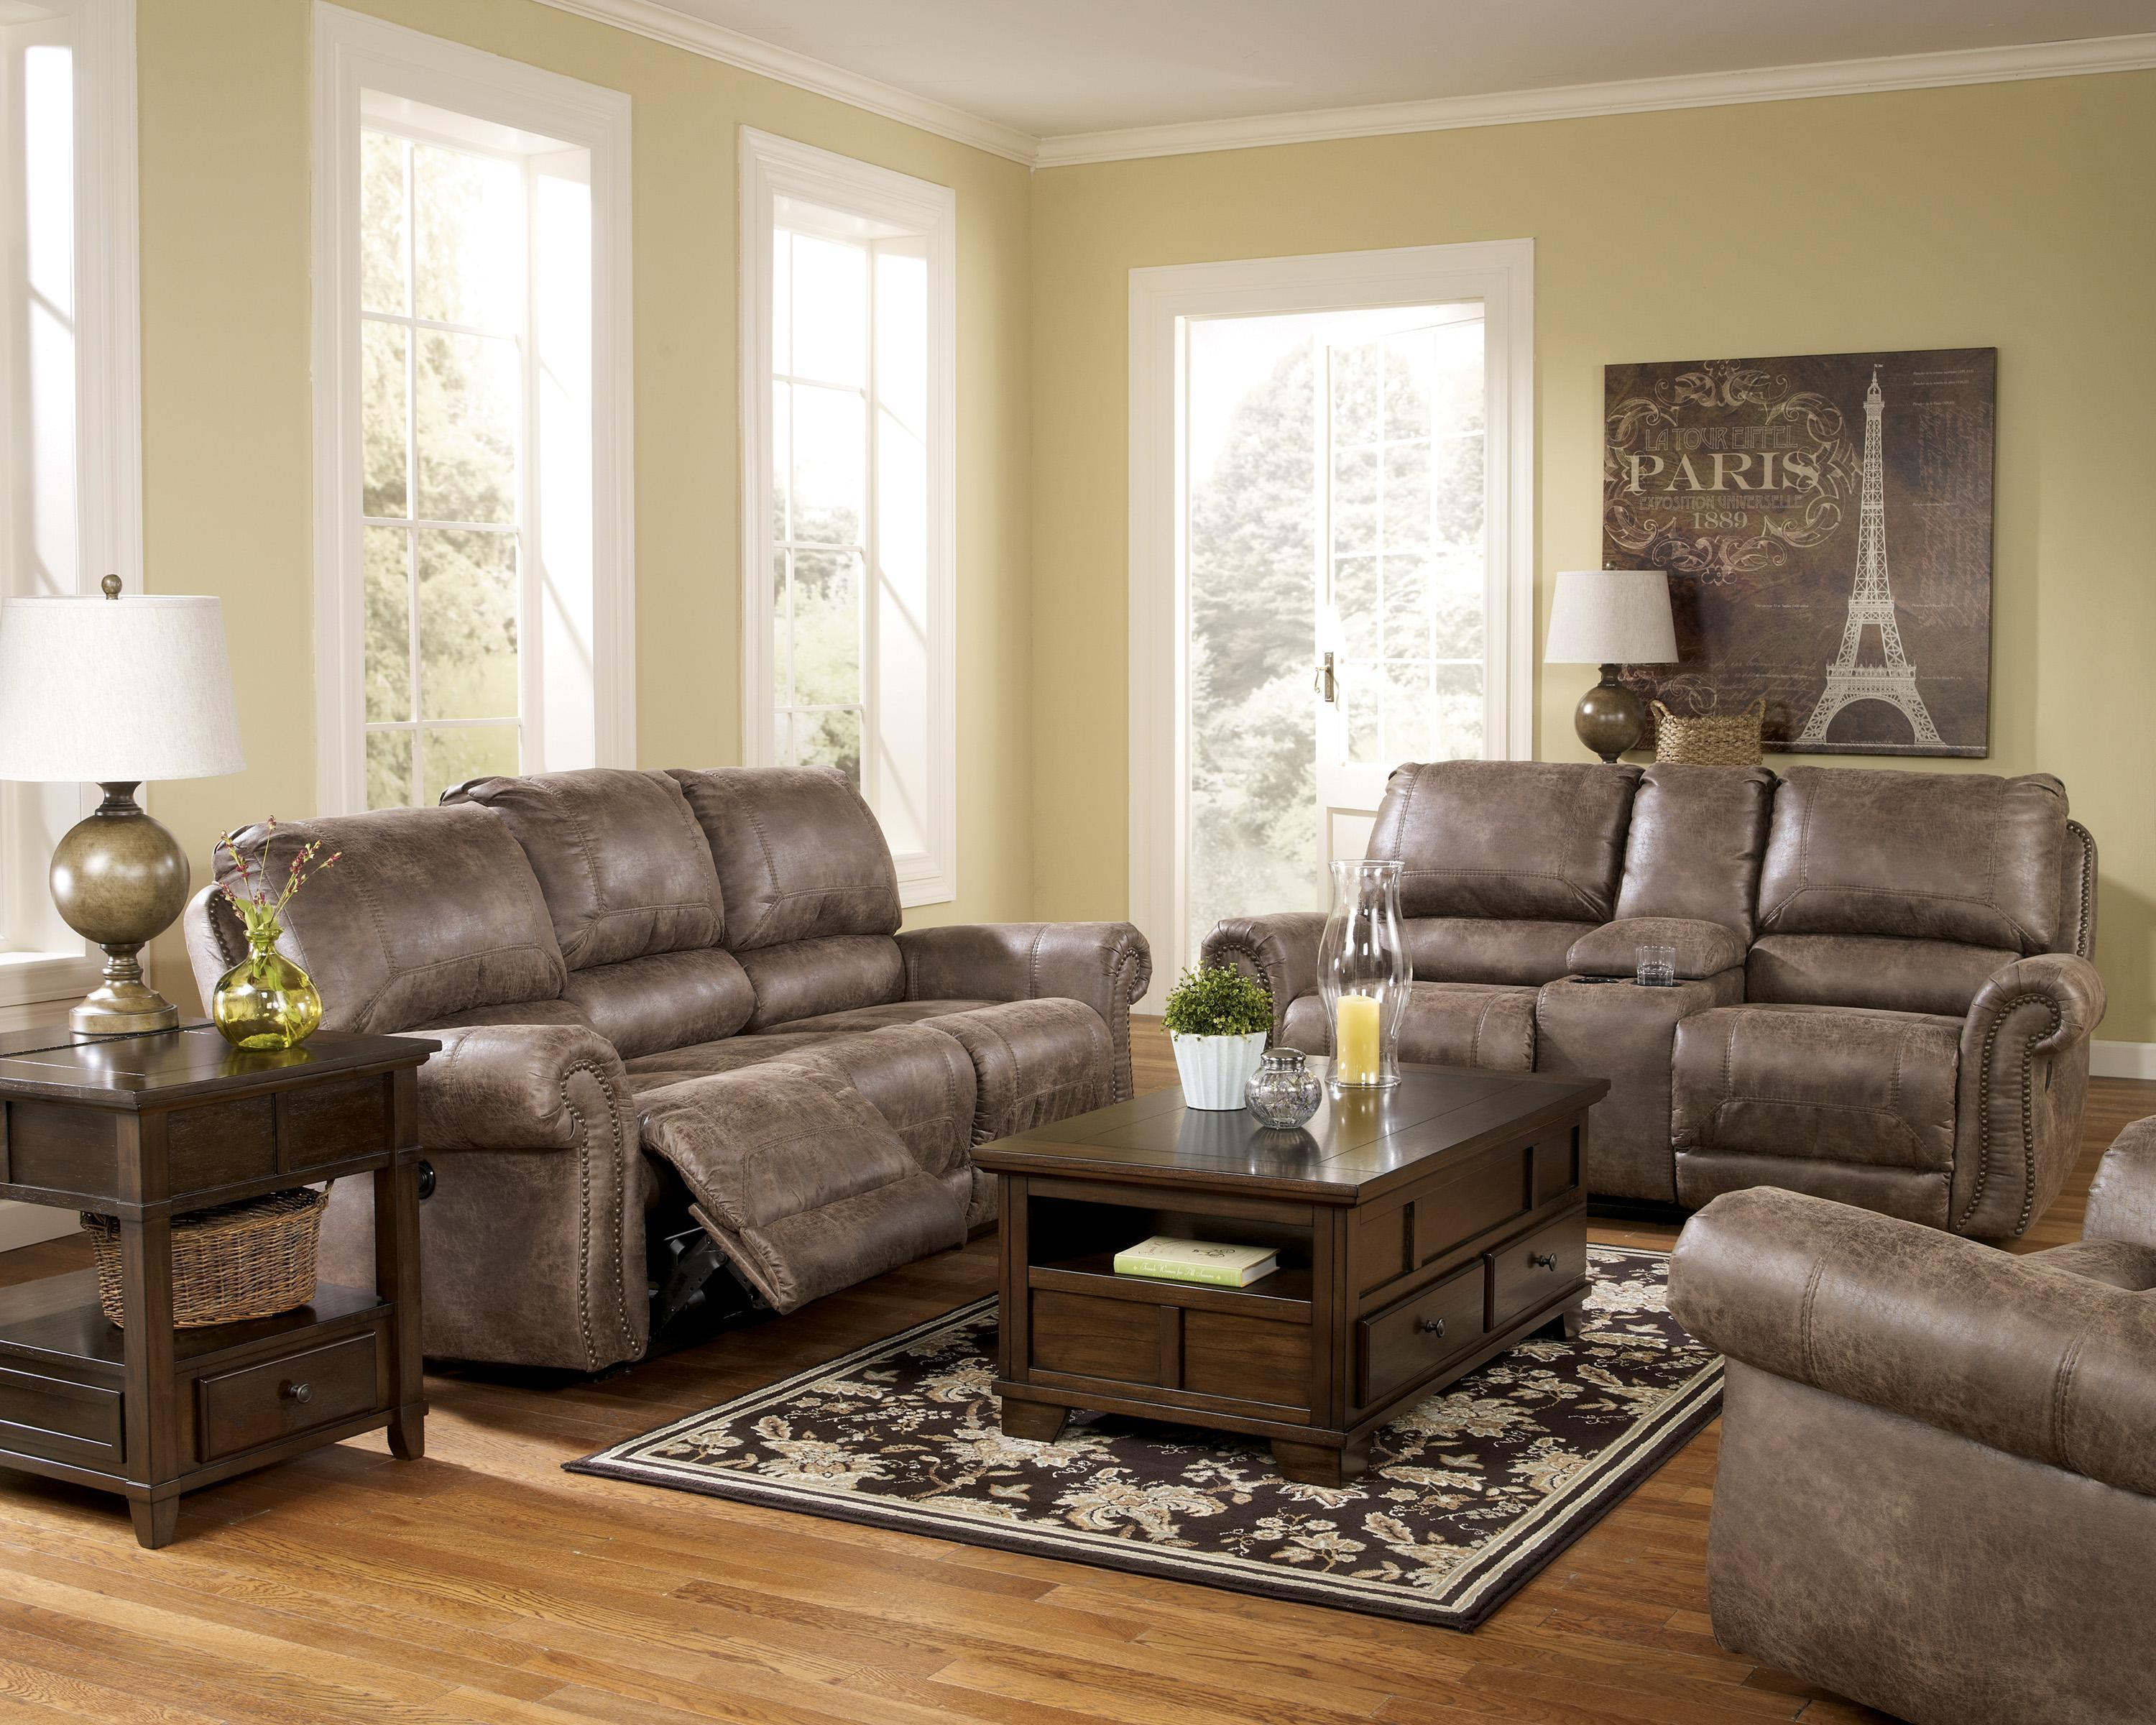 Reclining Faux Leather Sofa with Rolled Arms u0026 Nail Head Trim & Reclining Faux Leather Sofa with Rolled Arms u0026 Nail Head Trim by ... islam-shia.org